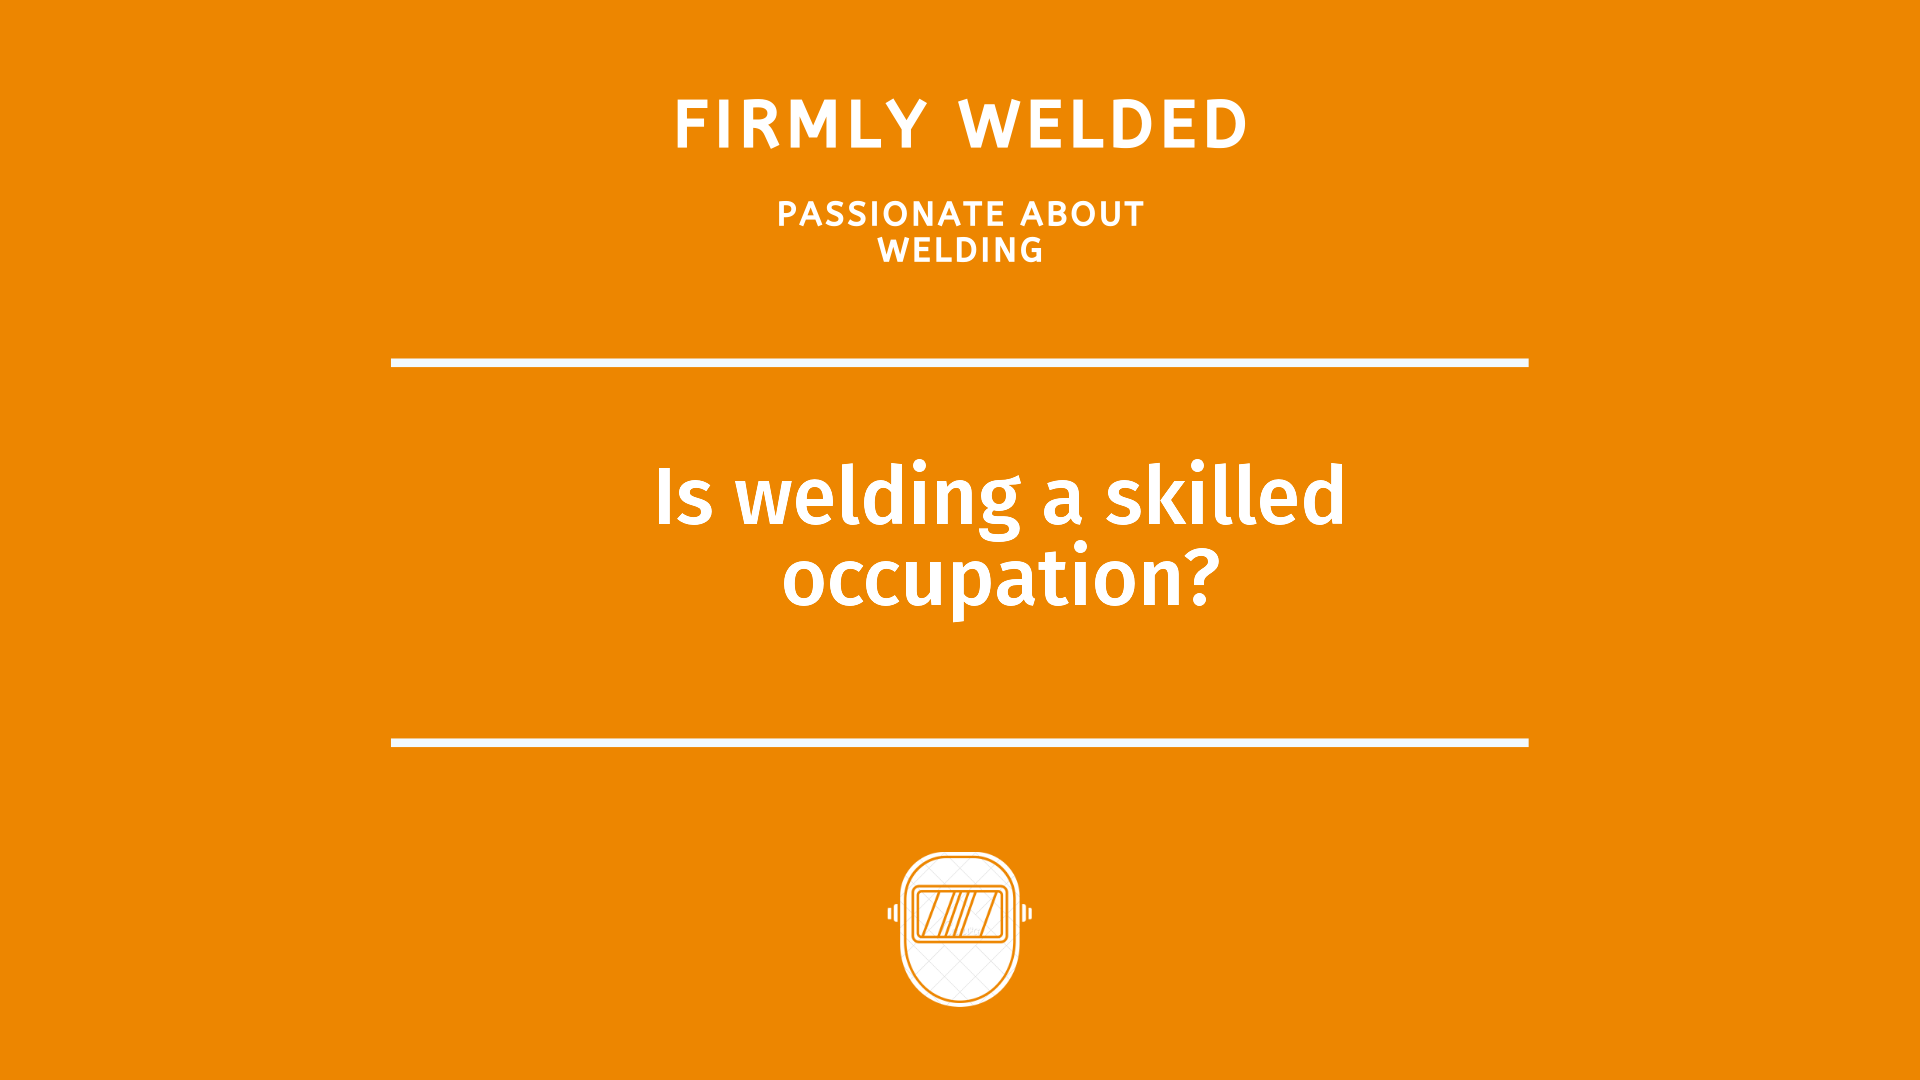 Is welding a skilled occupation?